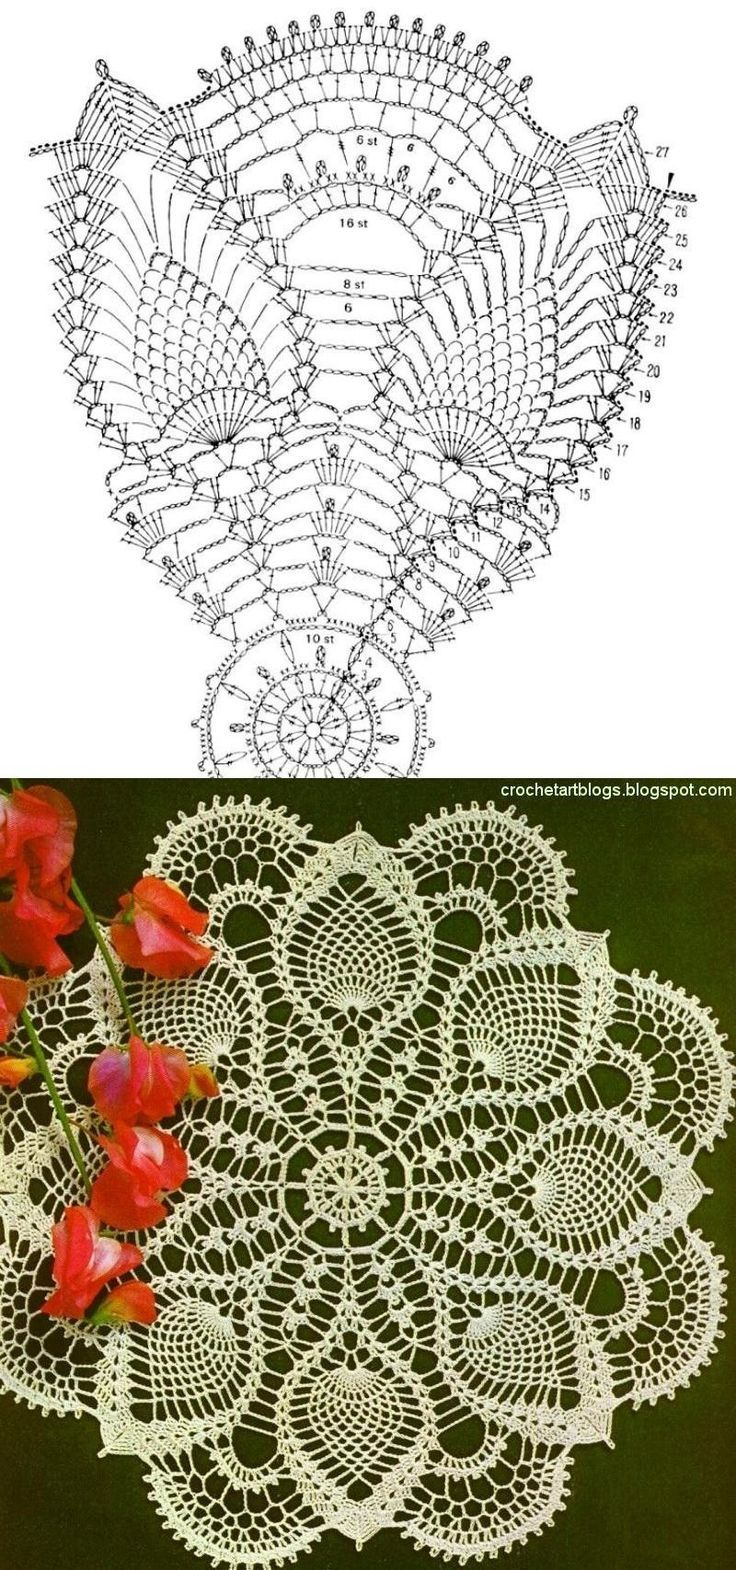 Lots of free crochet doily patterns here.: | cuadritos a crochet ...